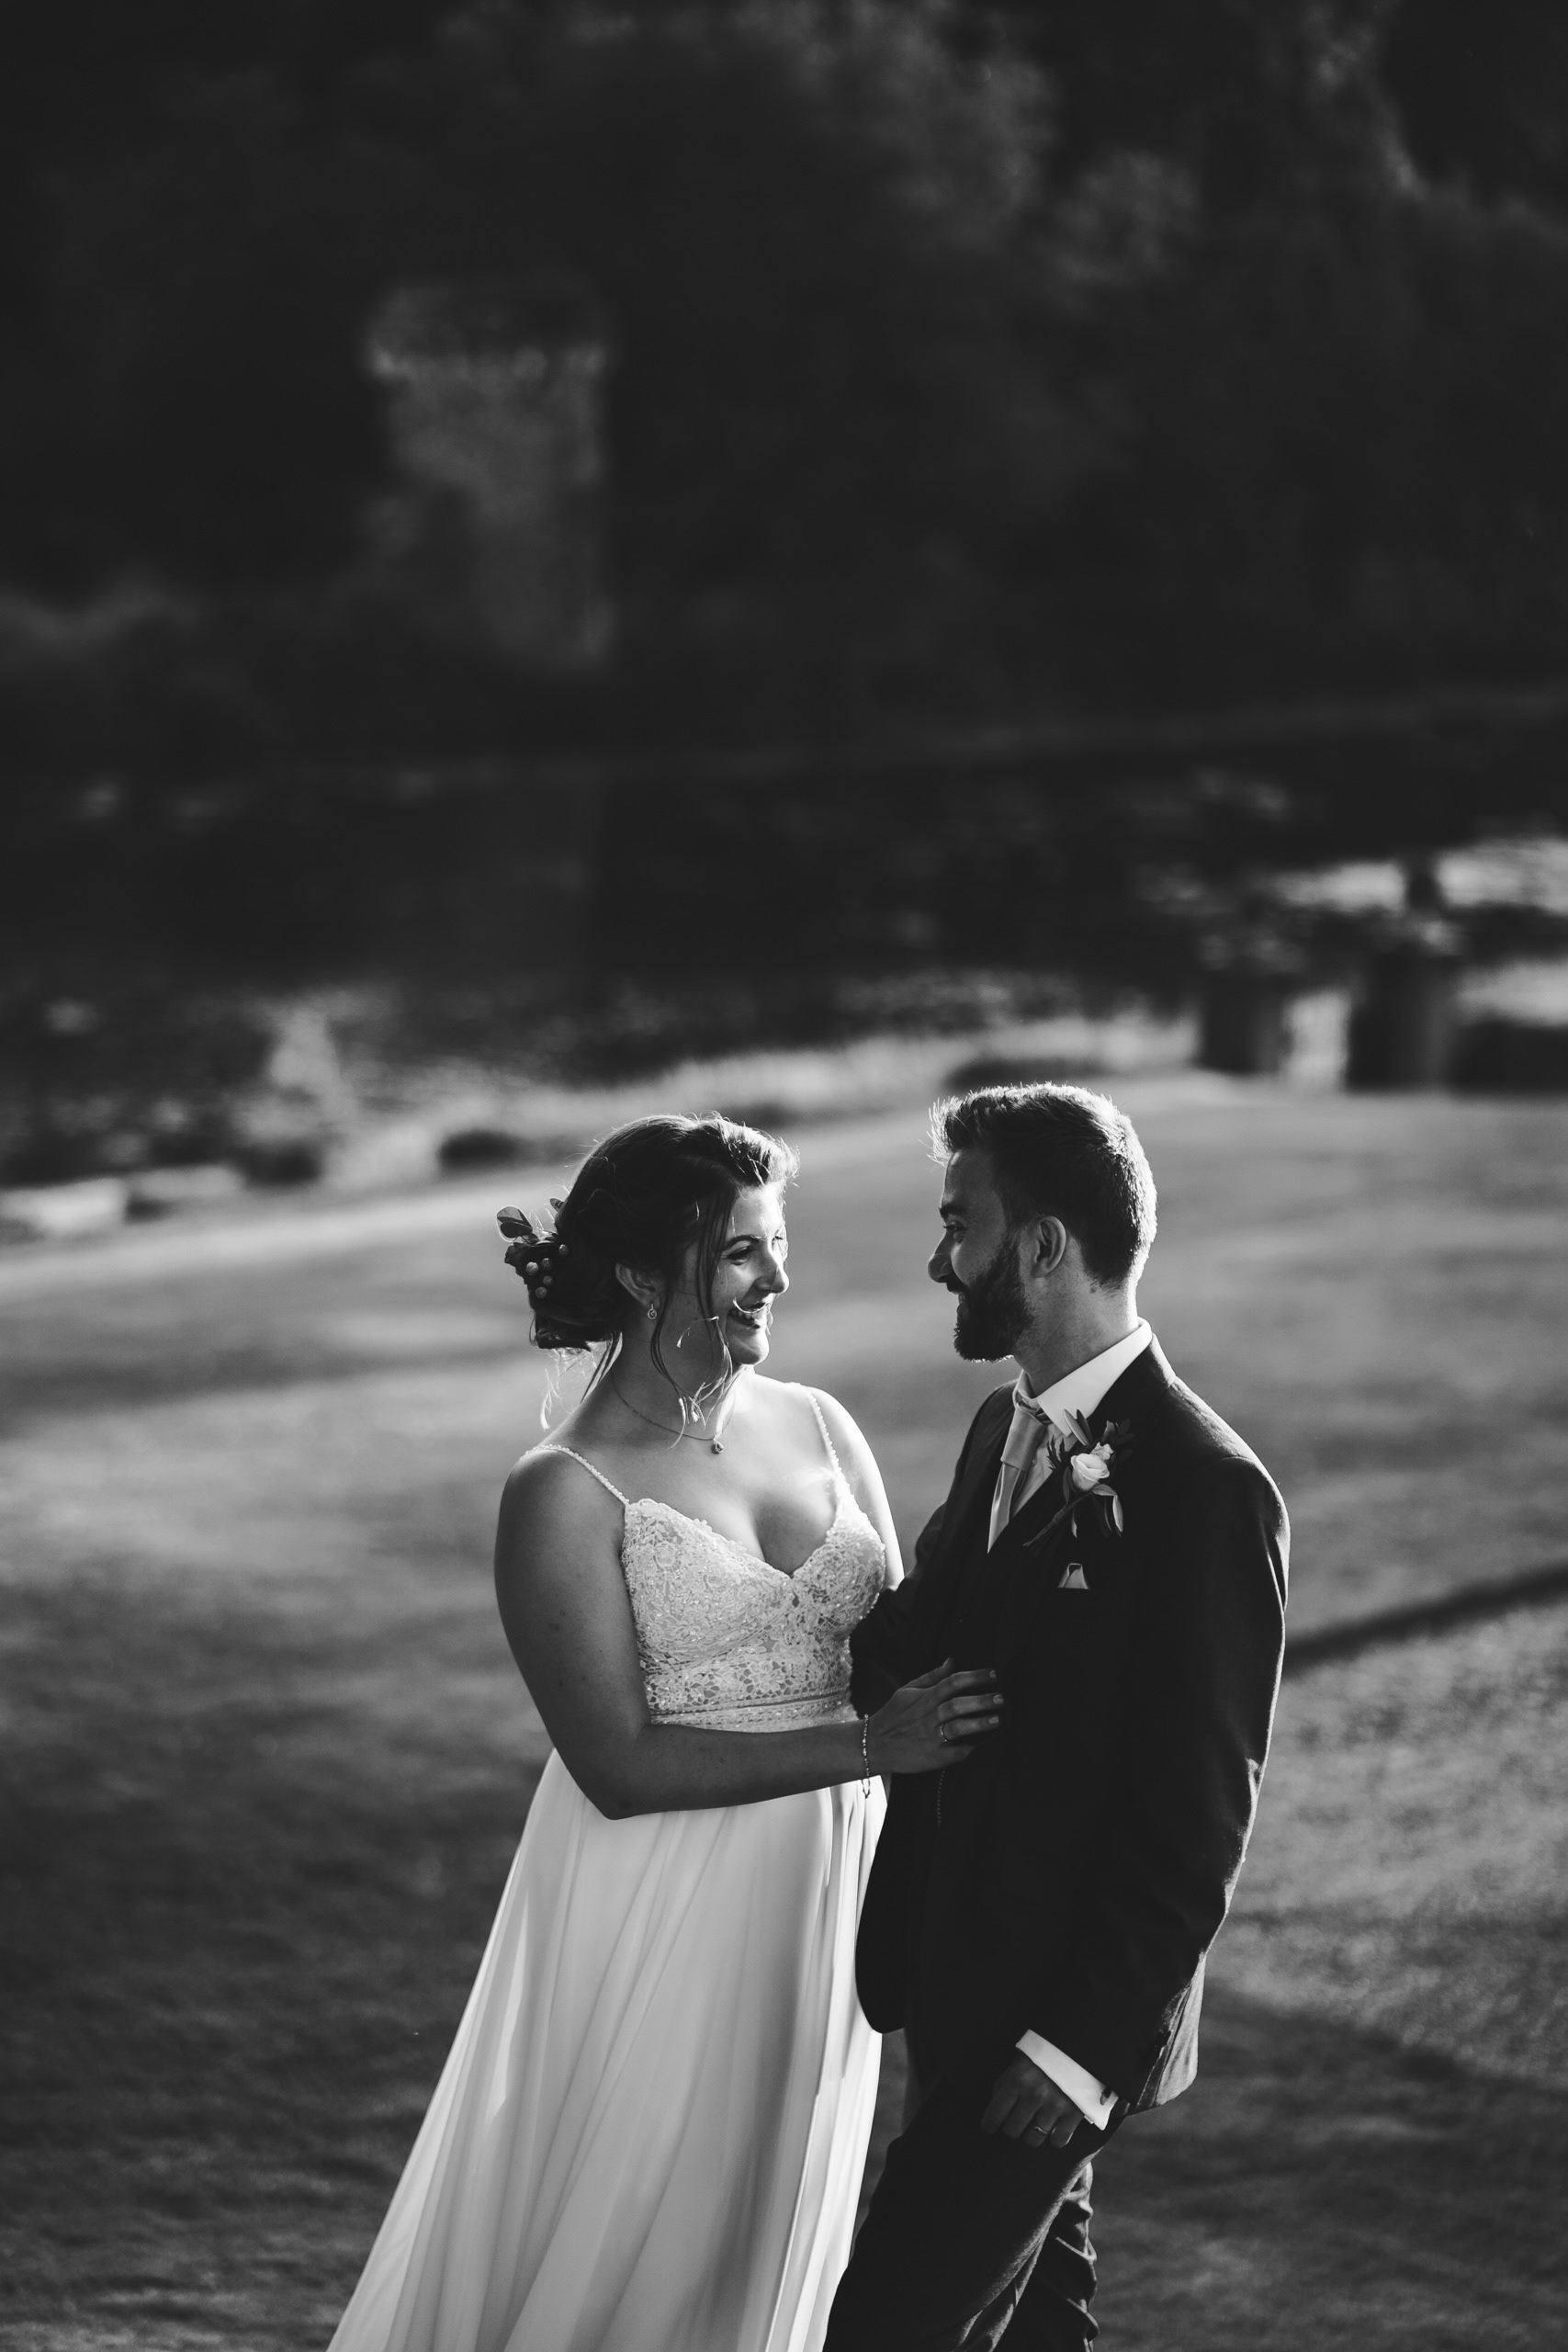 A black and white portrait of a bride and groom at Oxnead Hall near Aylsham